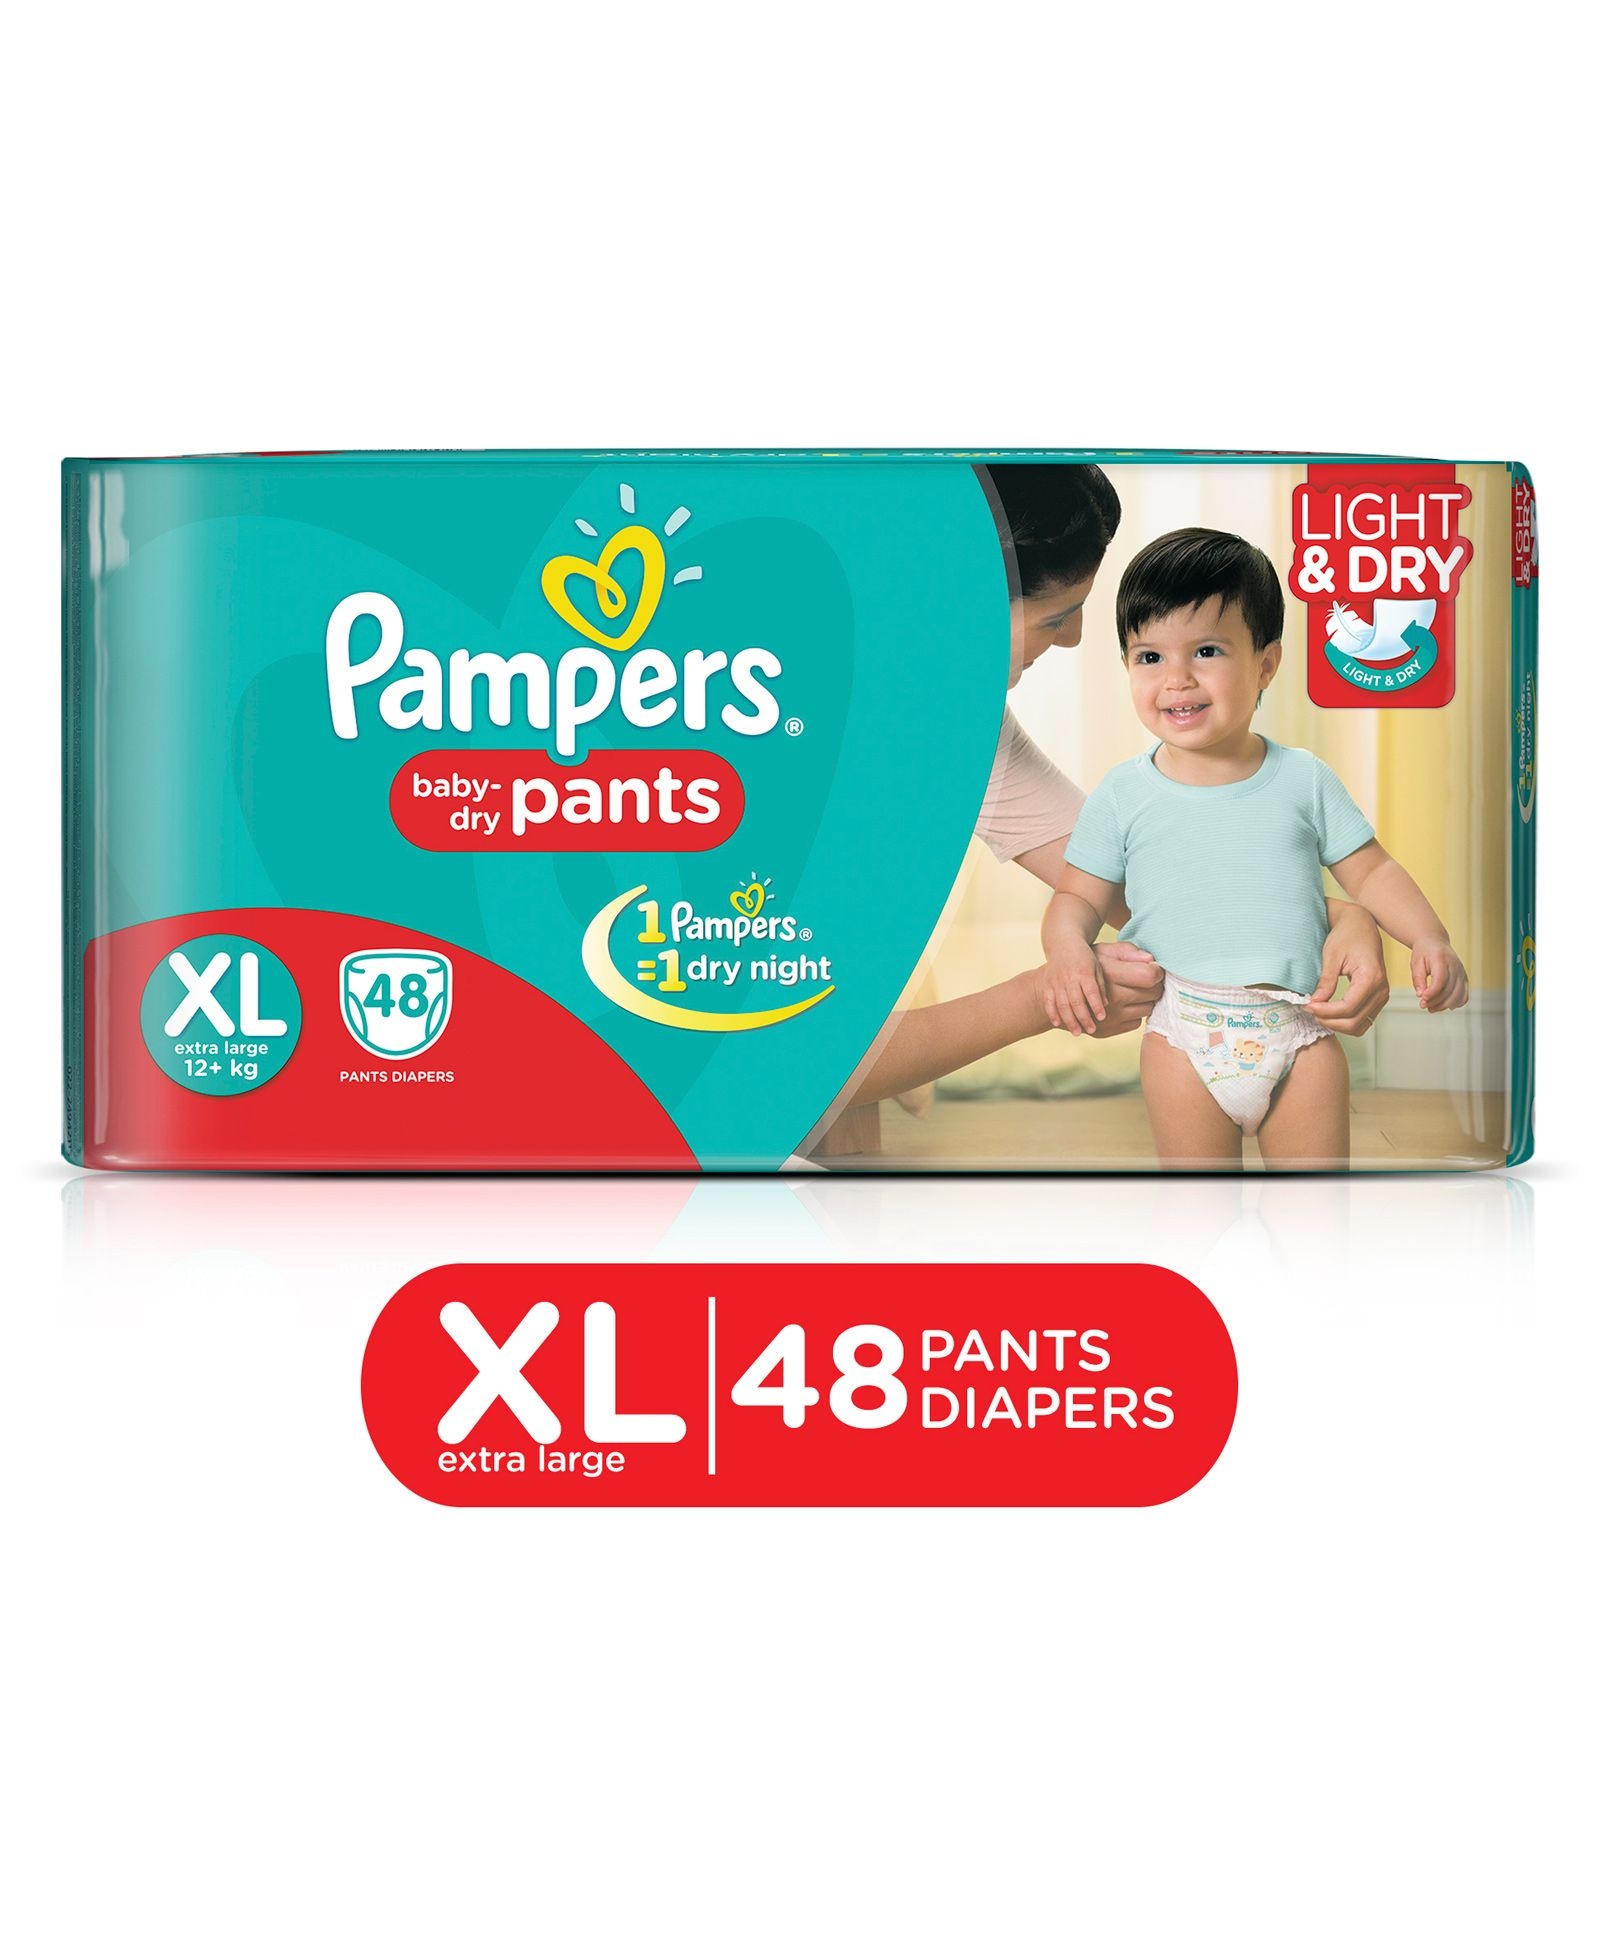 quality star diapers - photo #17